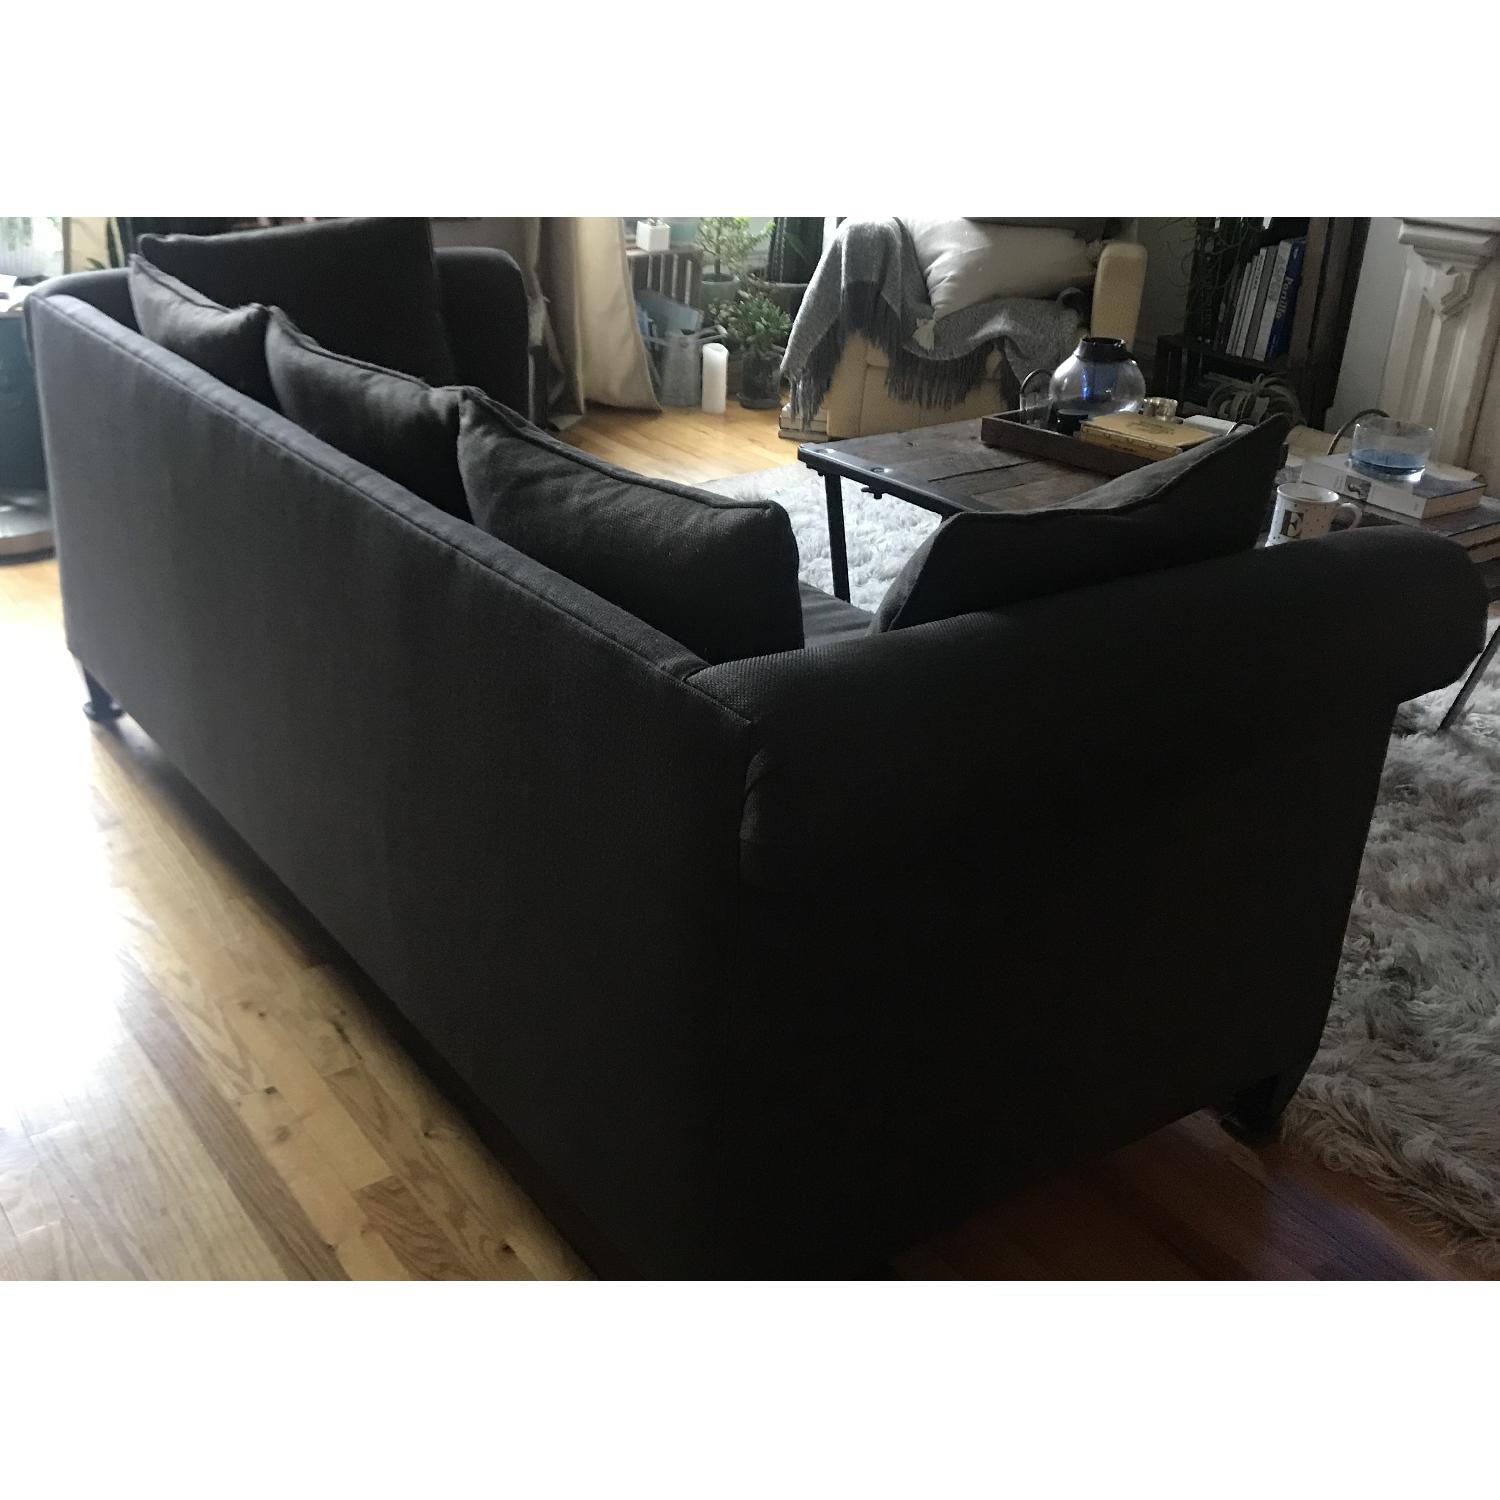 Crate & Barrel 3 Seater Down Filled Sofa - image-6